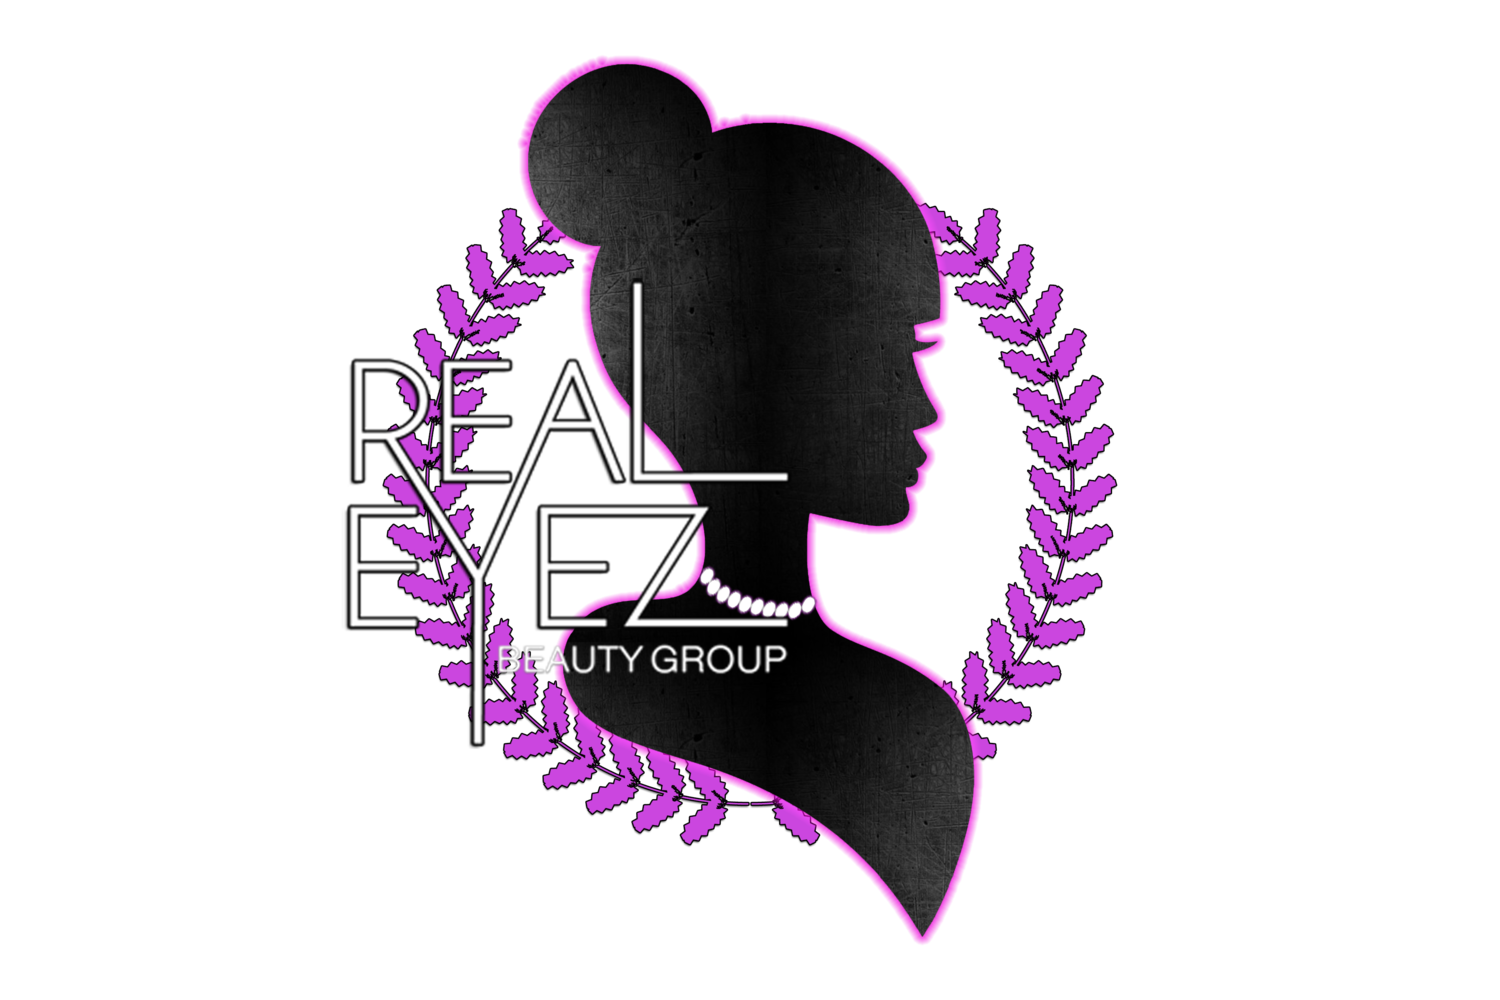 Real-Eyez Beauty